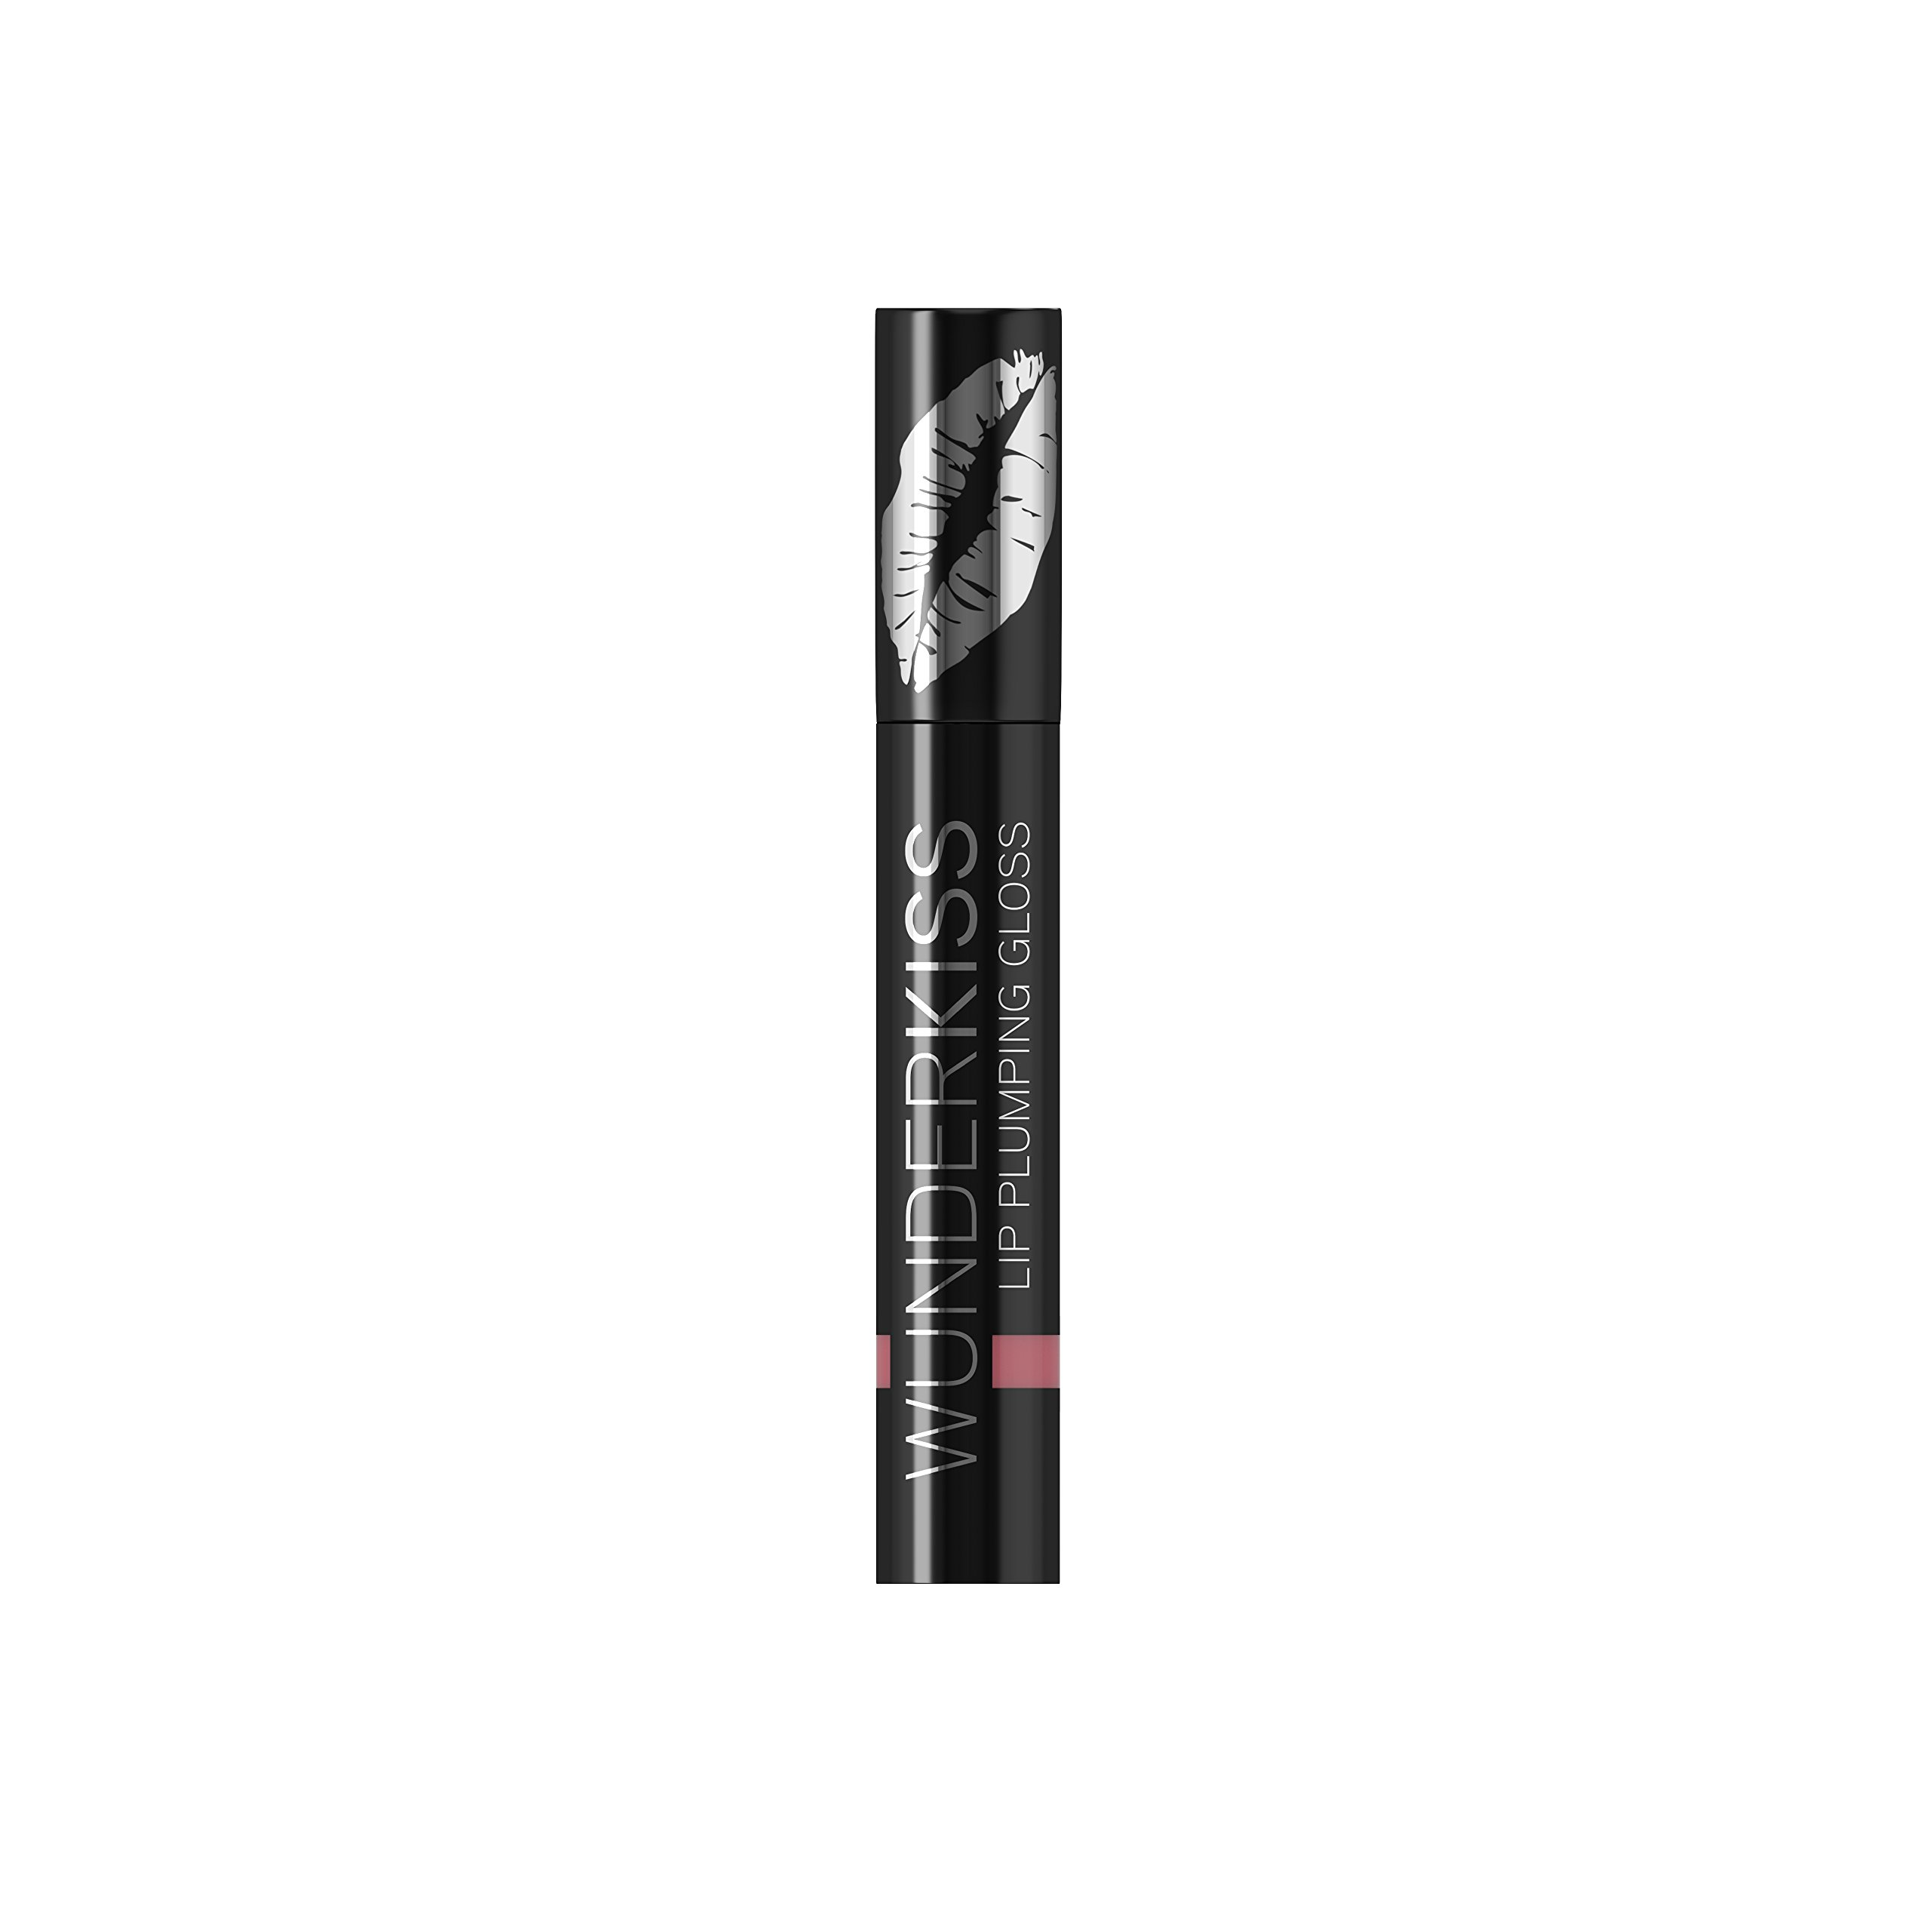 WUNDER2 WUNDERKISS Plumping Lip Gloss - Lip Plumper for Hydrated and Voluminous Lips, Rose Color